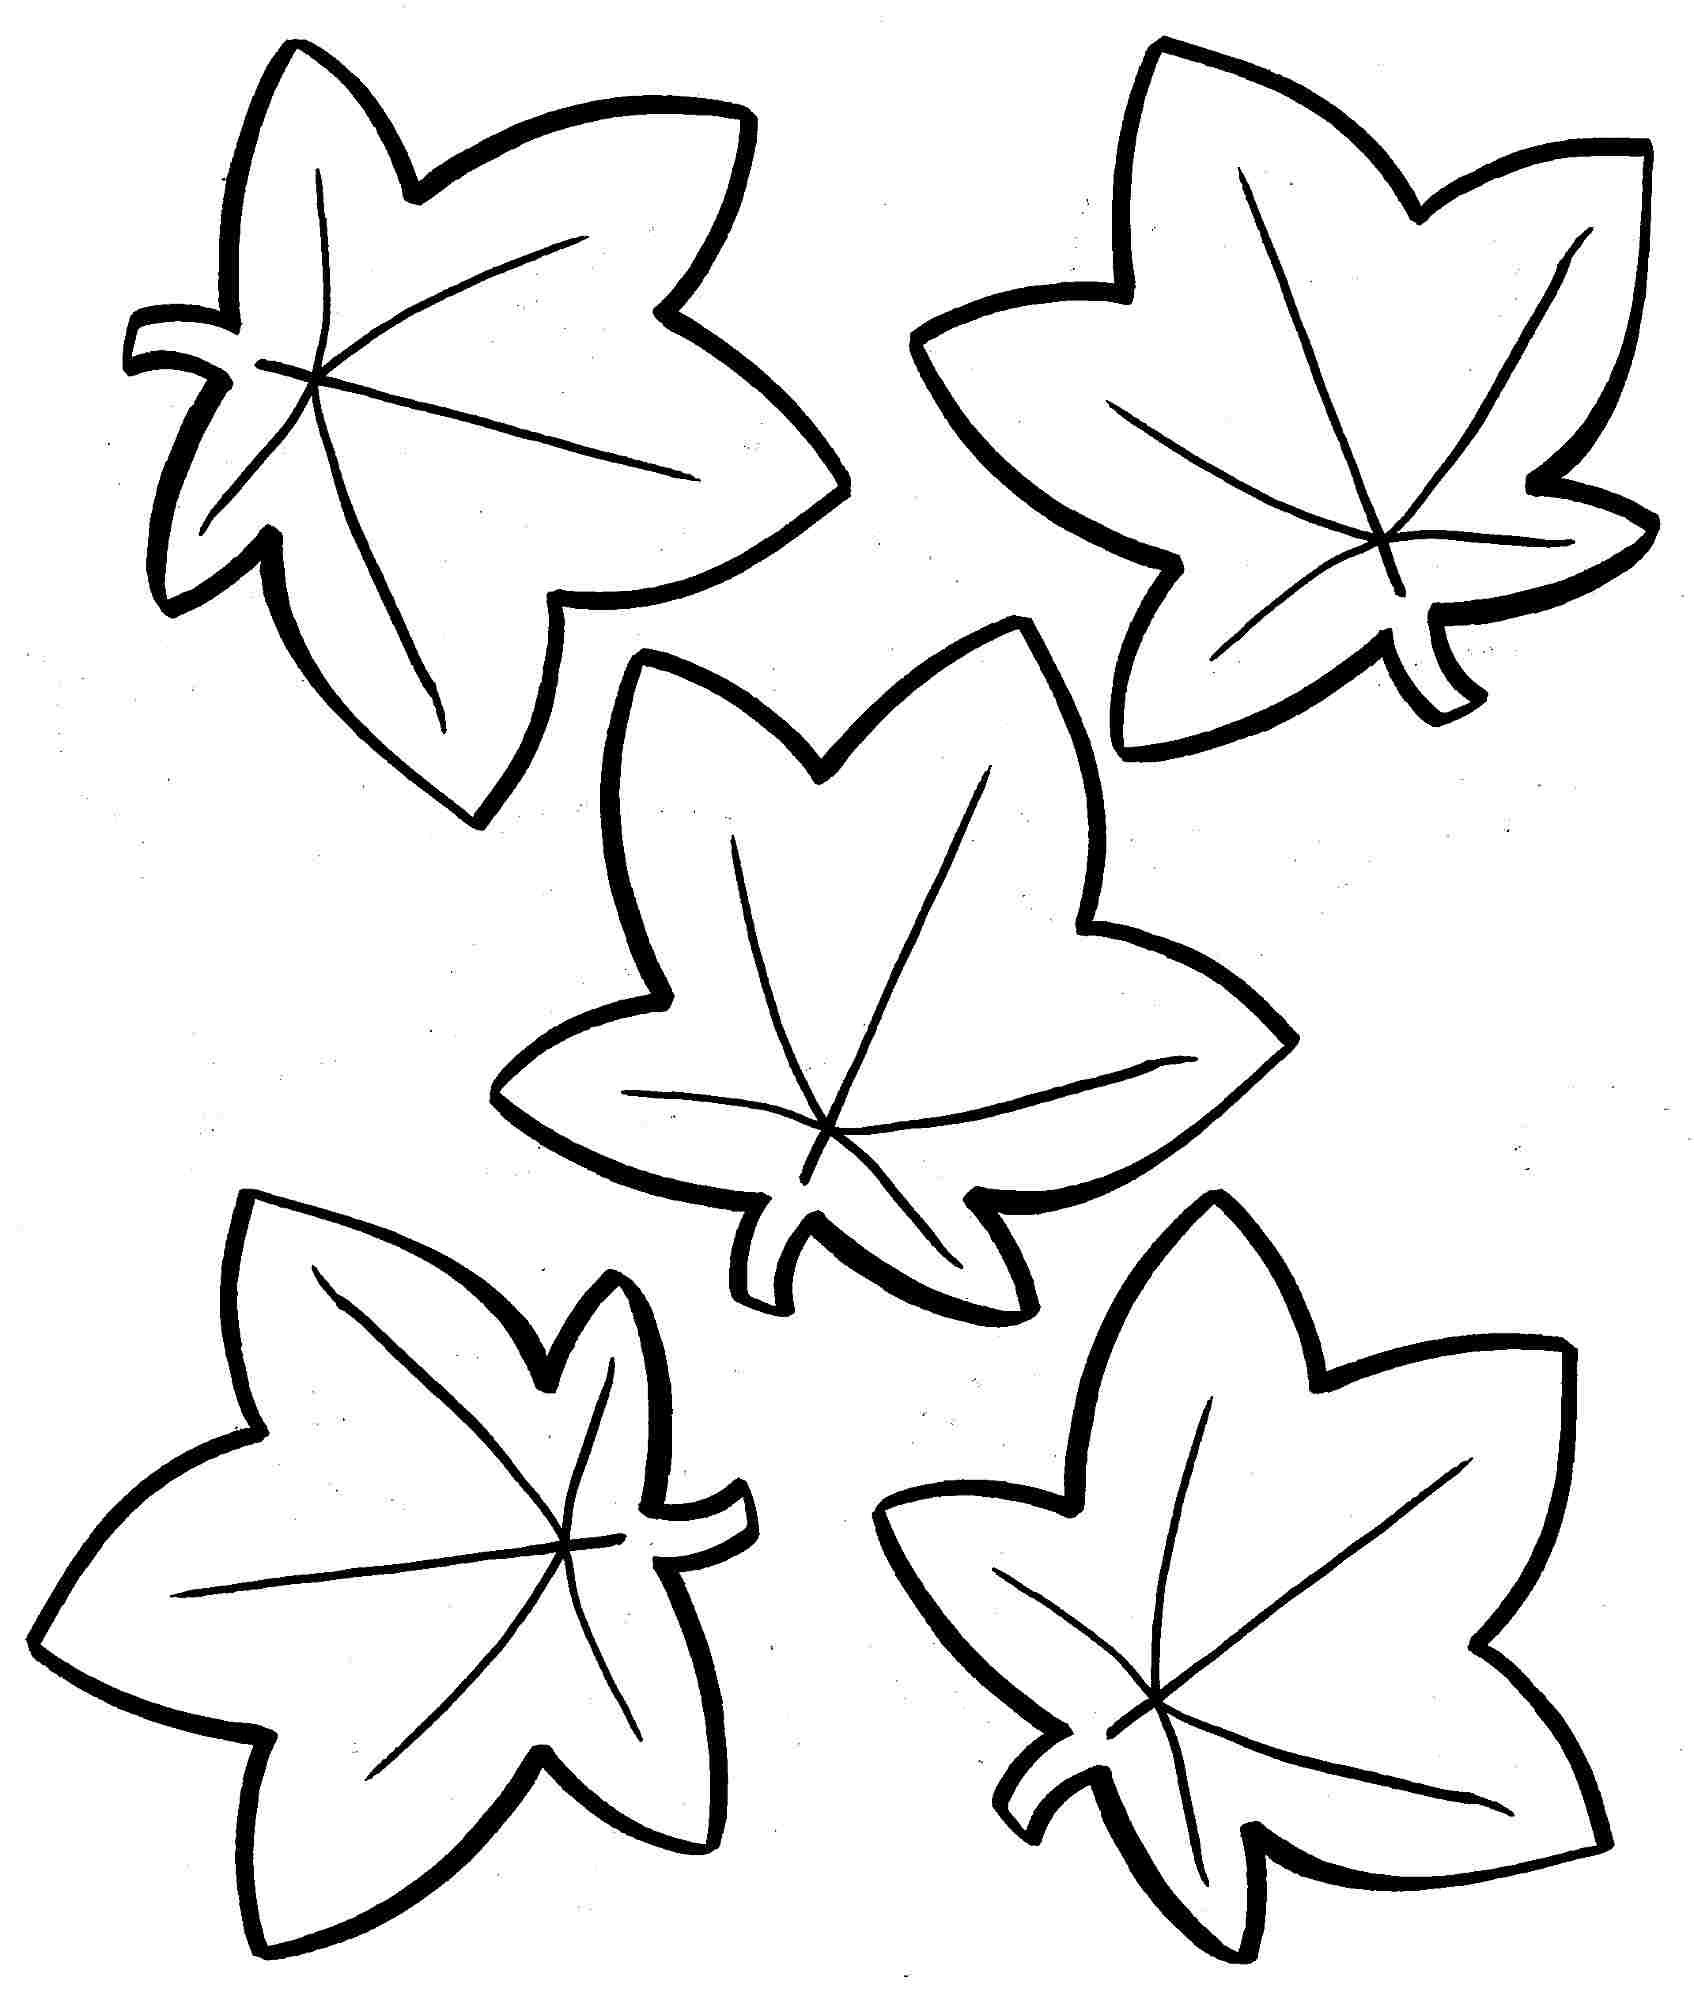 Fall Leaves Coloring Pages Printable Autumn Leaves Coloring Page